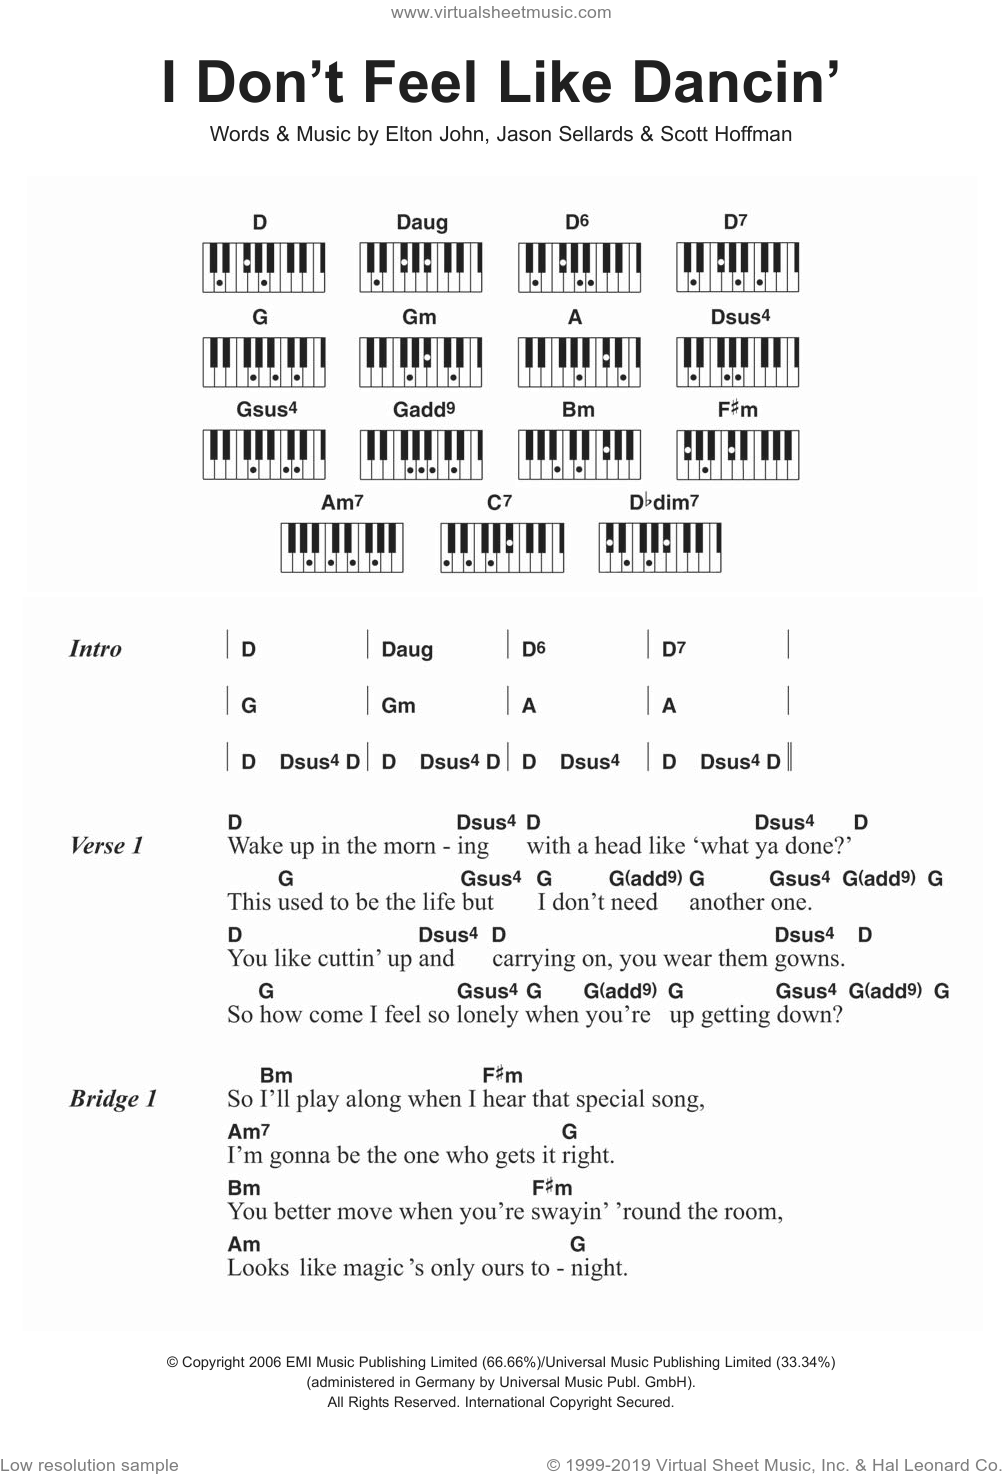 I Don't Feel Like Dancin' sheet music for piano solo (chords, lyrics, melody) by Scott Hoffman and Elton John. Score Image Preview.